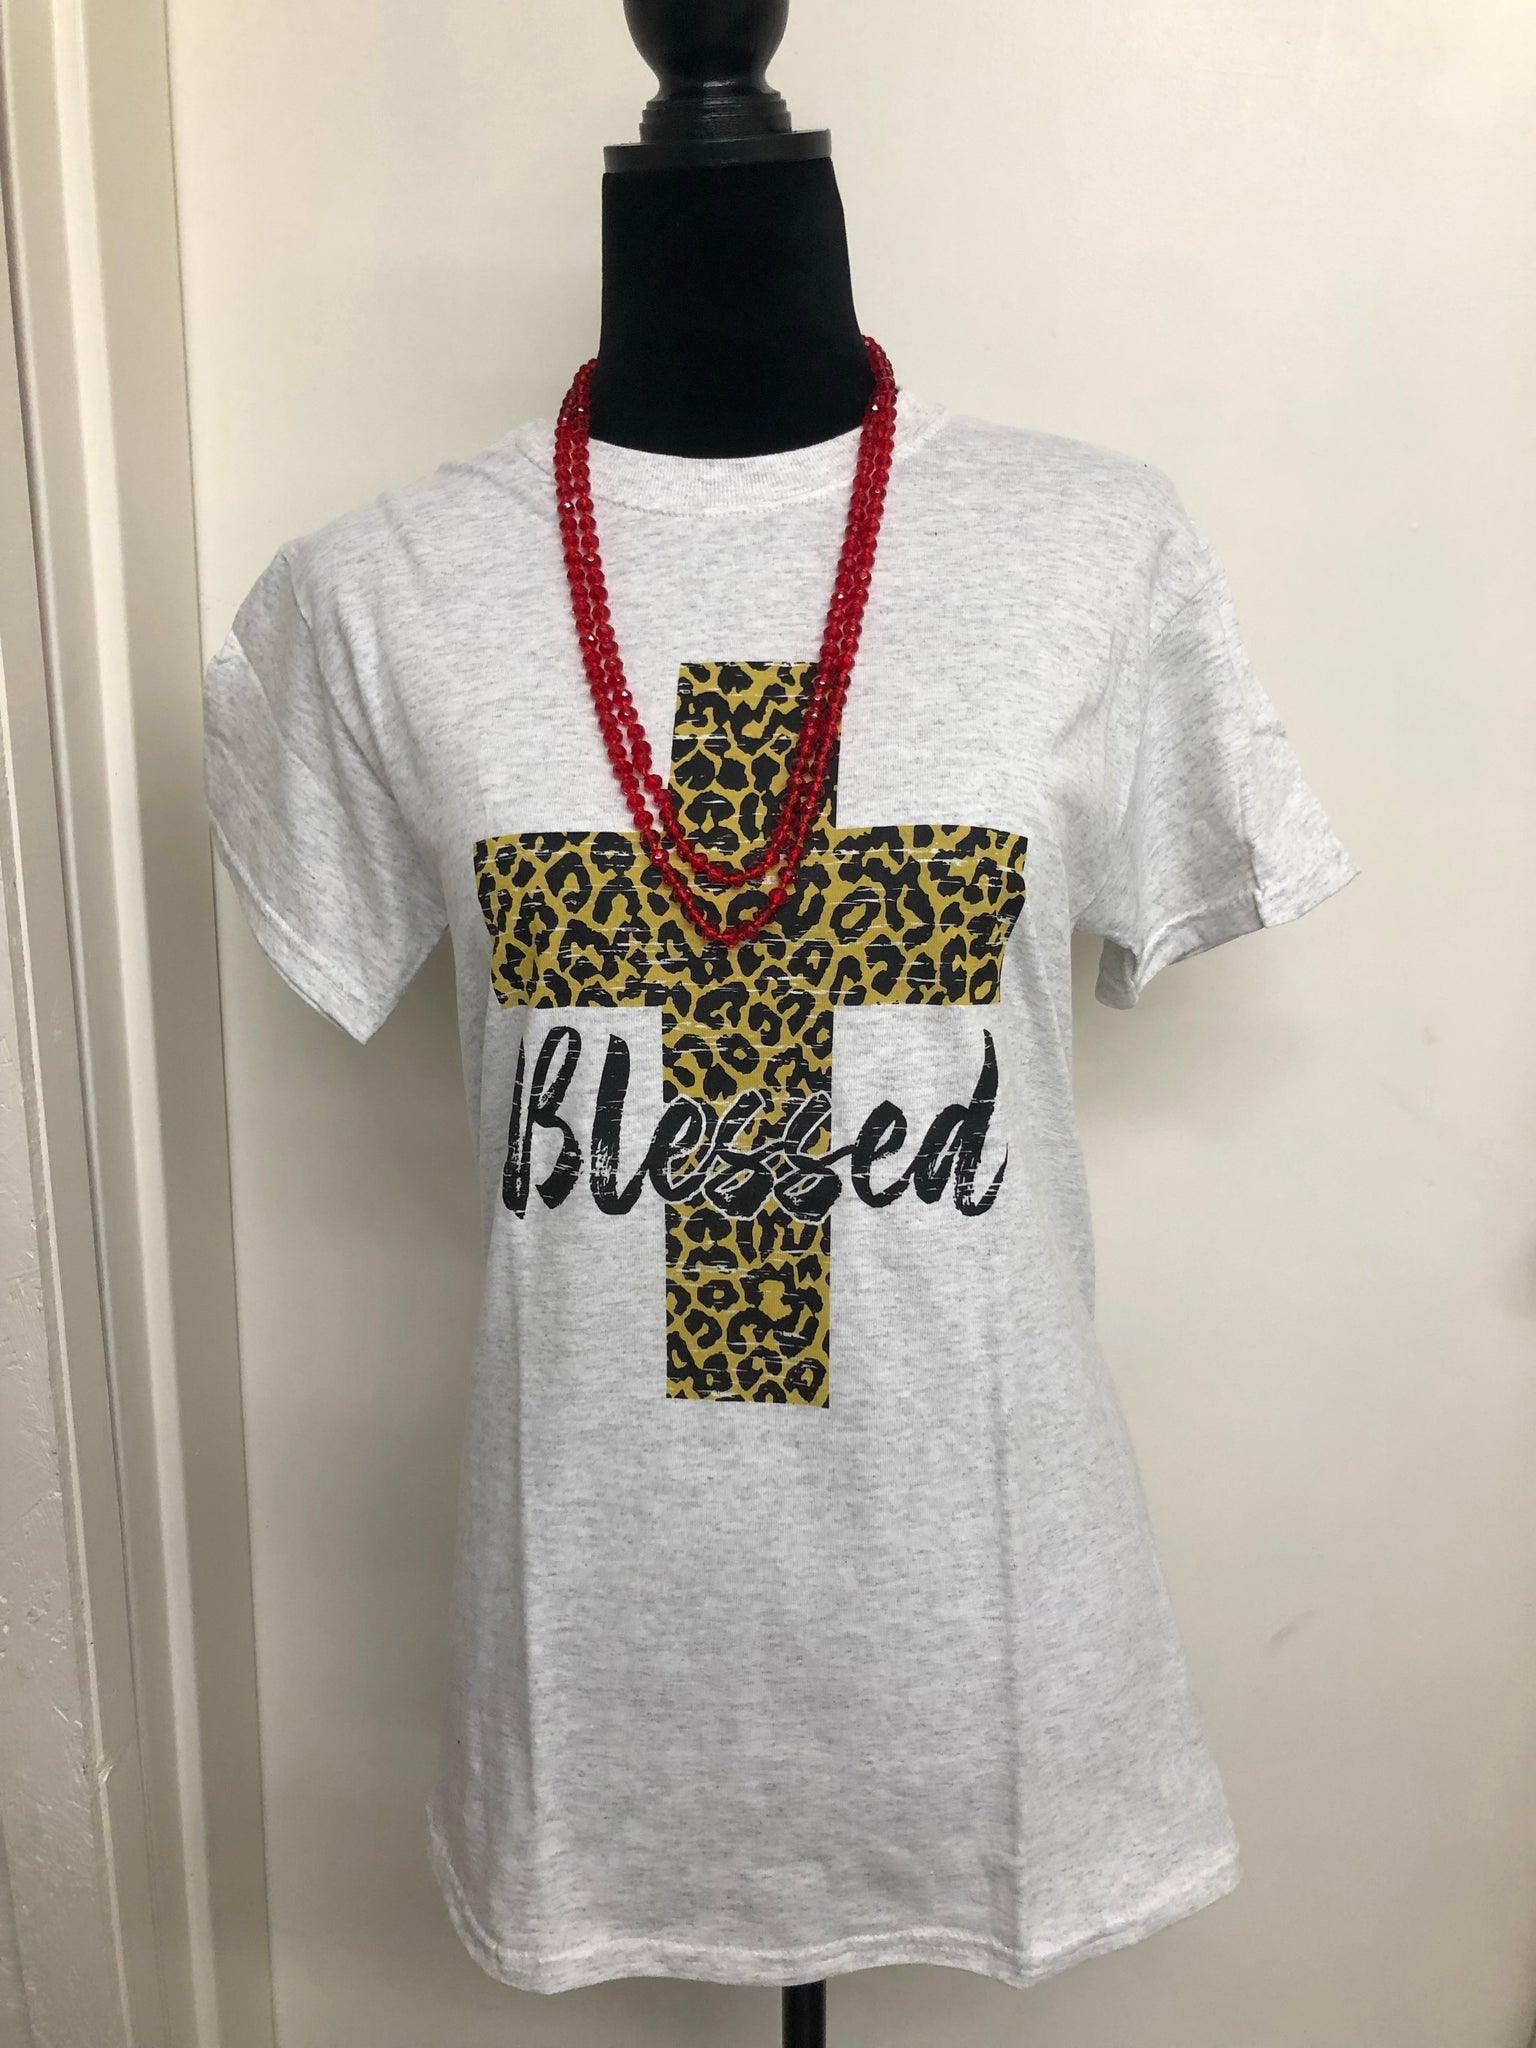 LEOPARD BLESSED TEE Youth & Adult